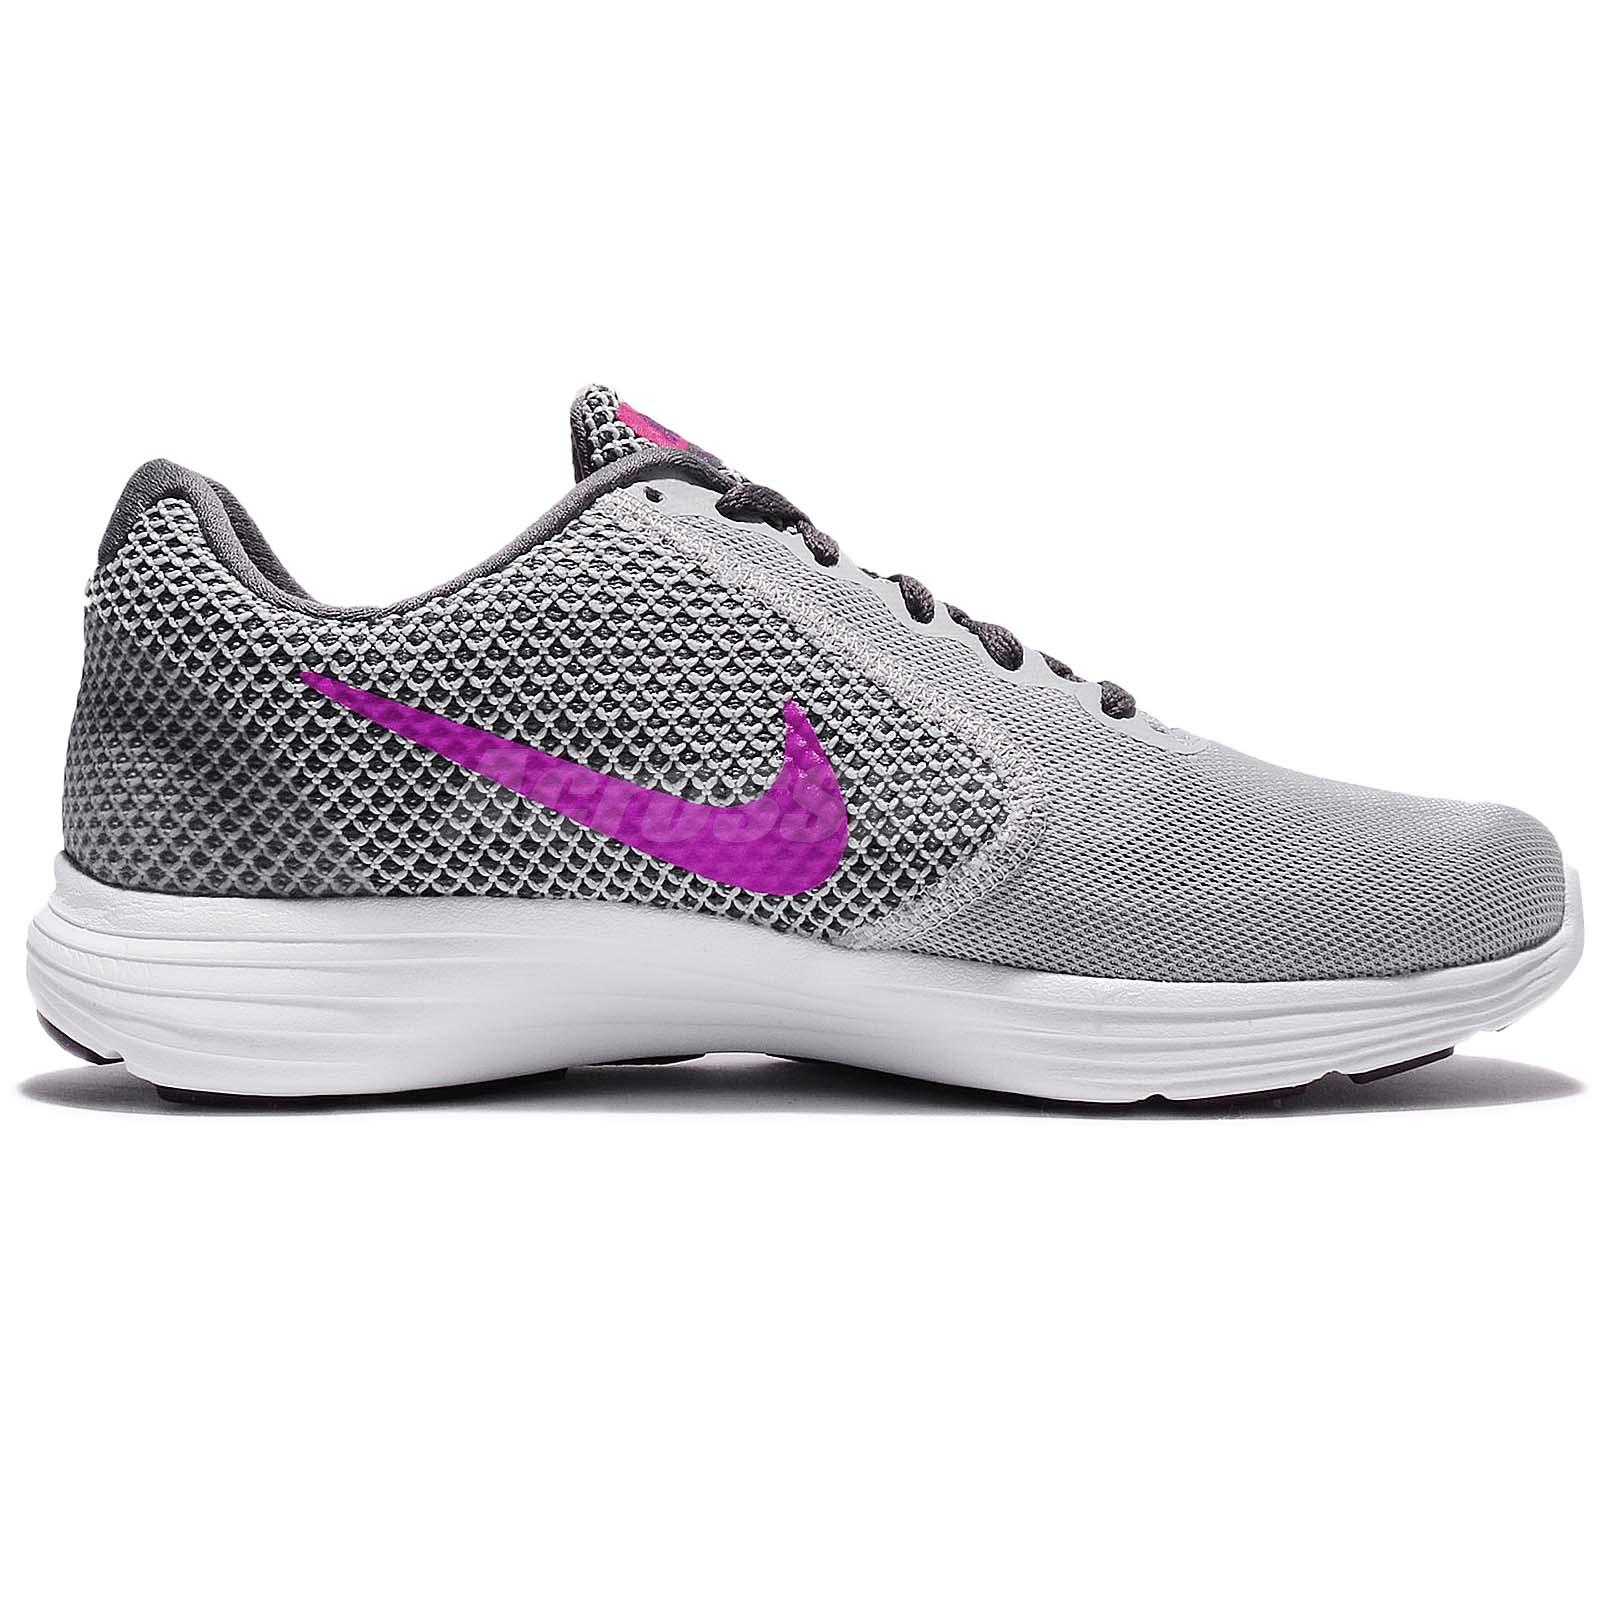 Nike Revolution 3 Womens 819303-009 Grey Fire Pink Mesh Running Shoes Size 6